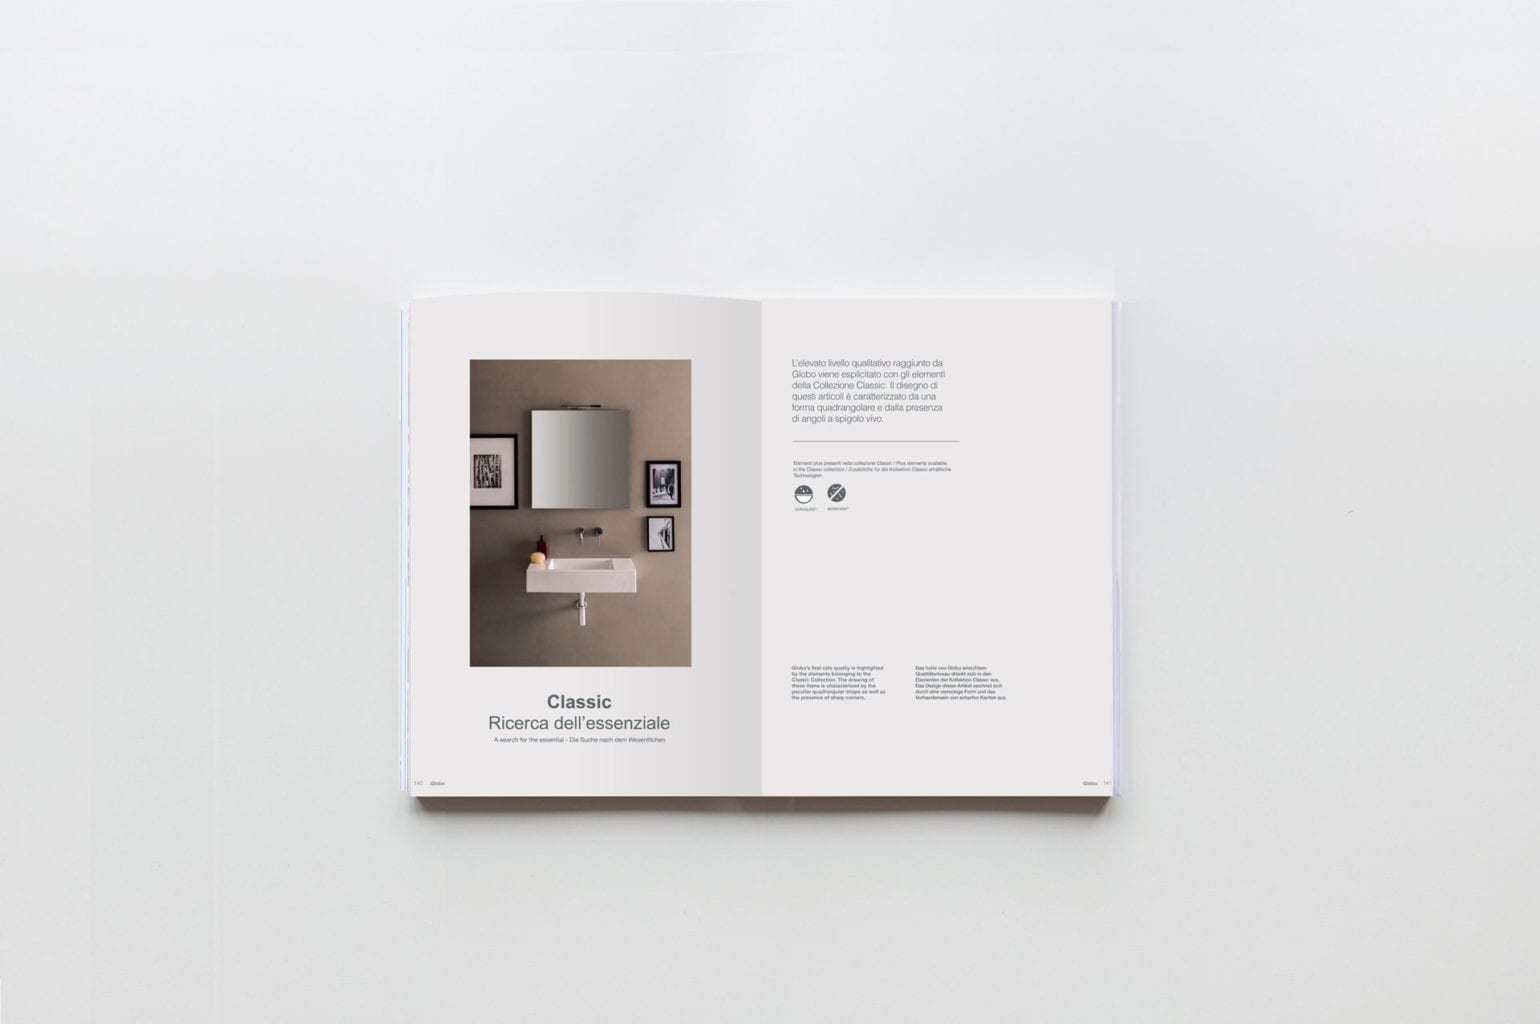 domenico_orefice_design_studio_graphic_branding_globo_general_catalogue_11